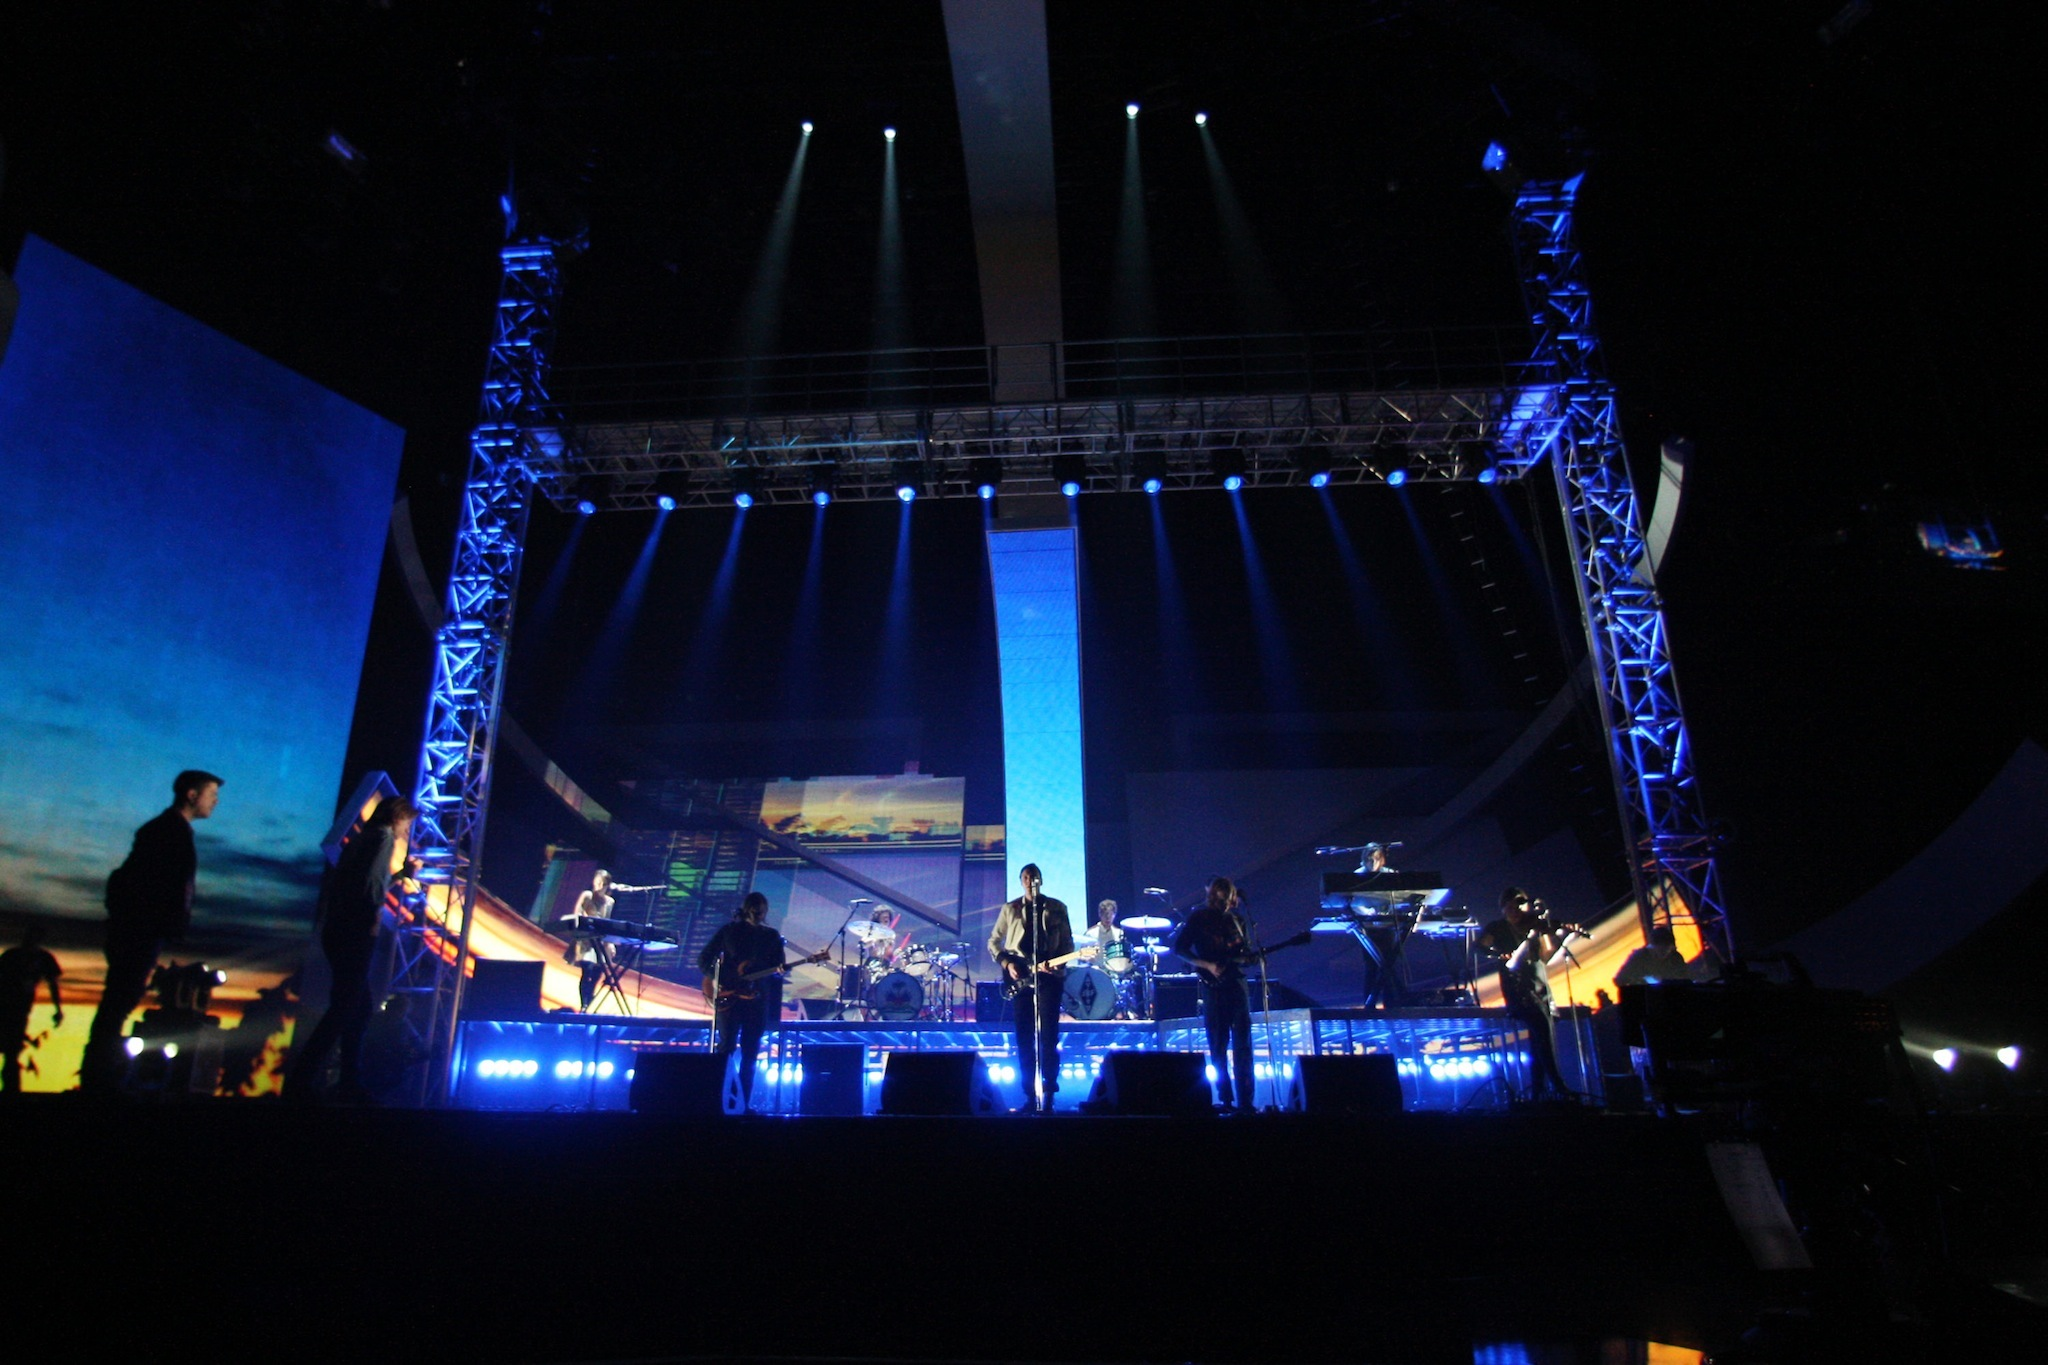 Arcade Fire at The BRIT Awards 2011 - Rehearsals